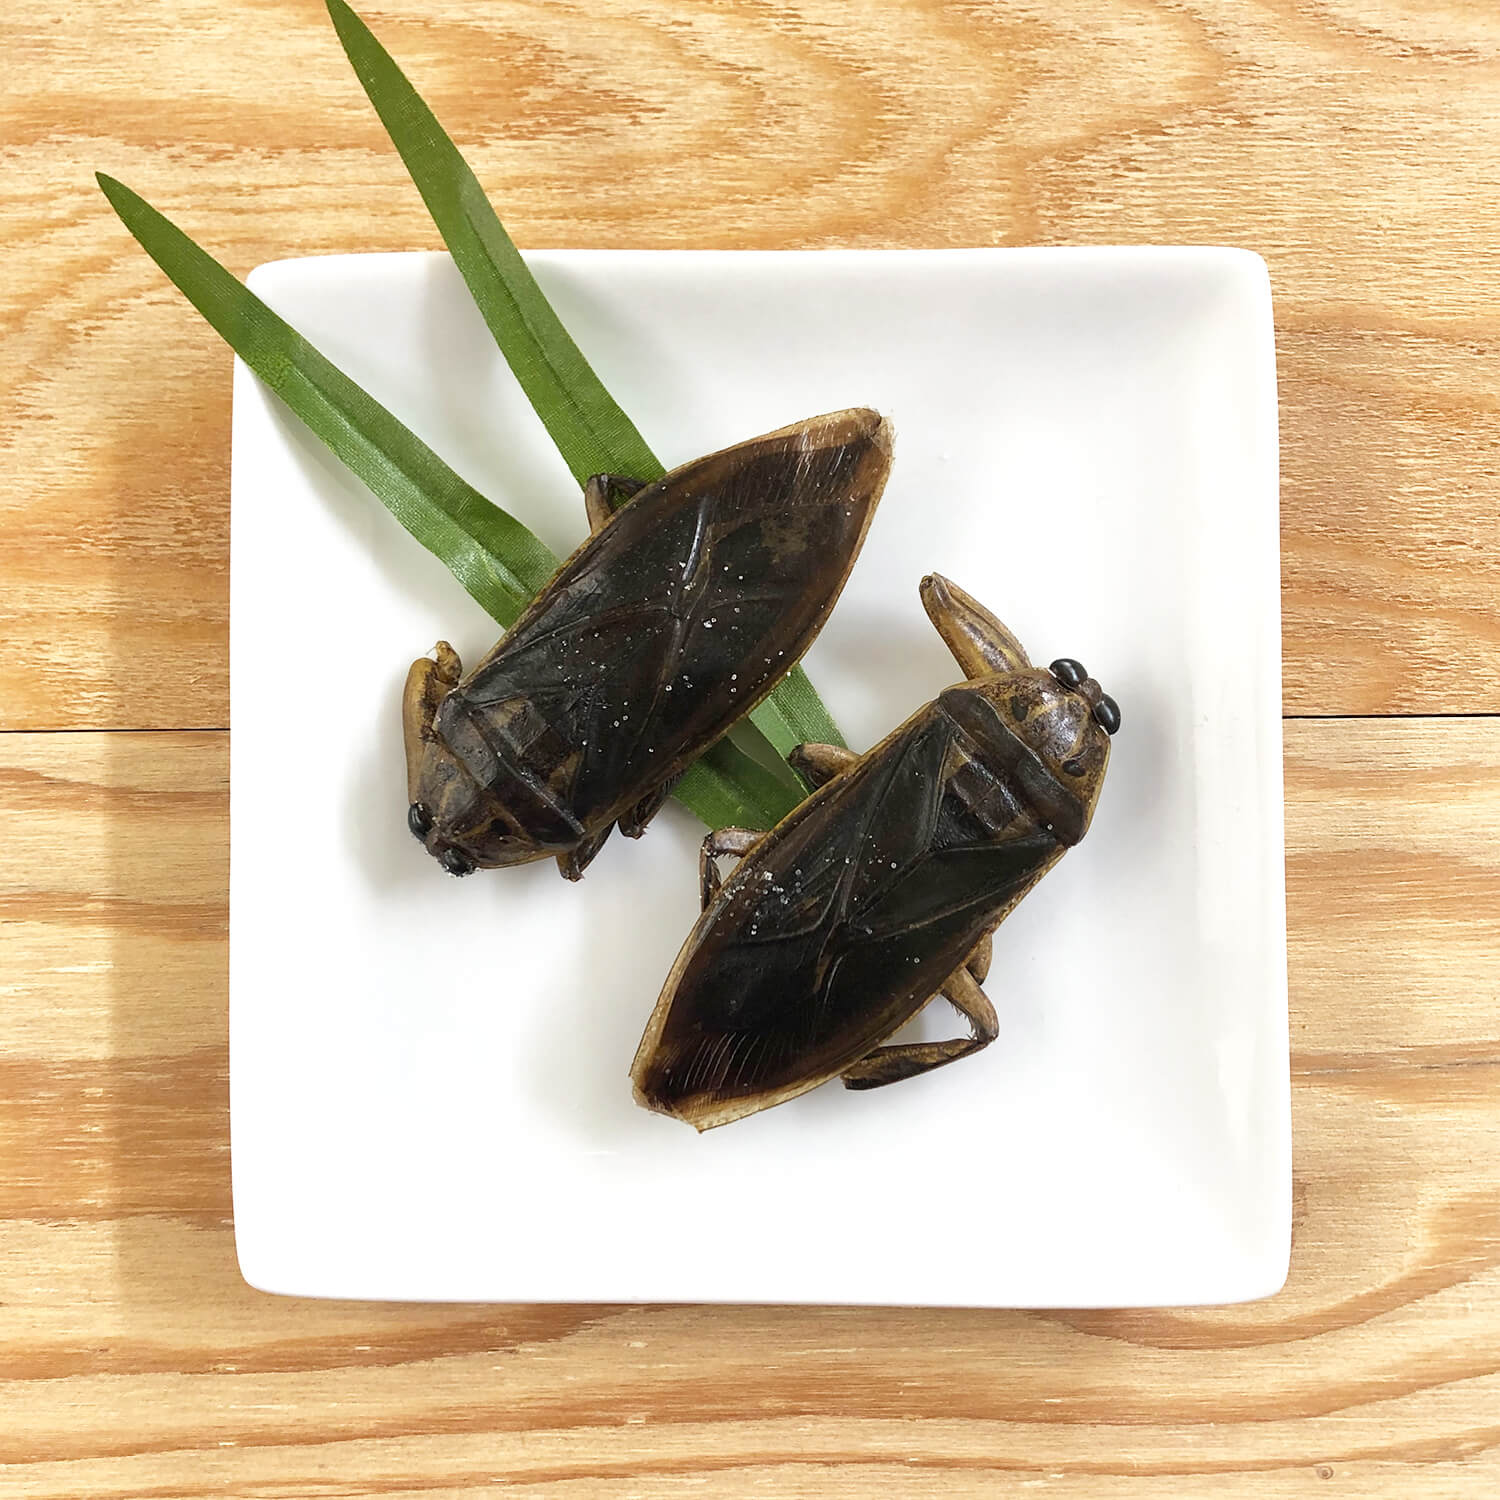 Giant Waterbugs8g(タガメ8g)